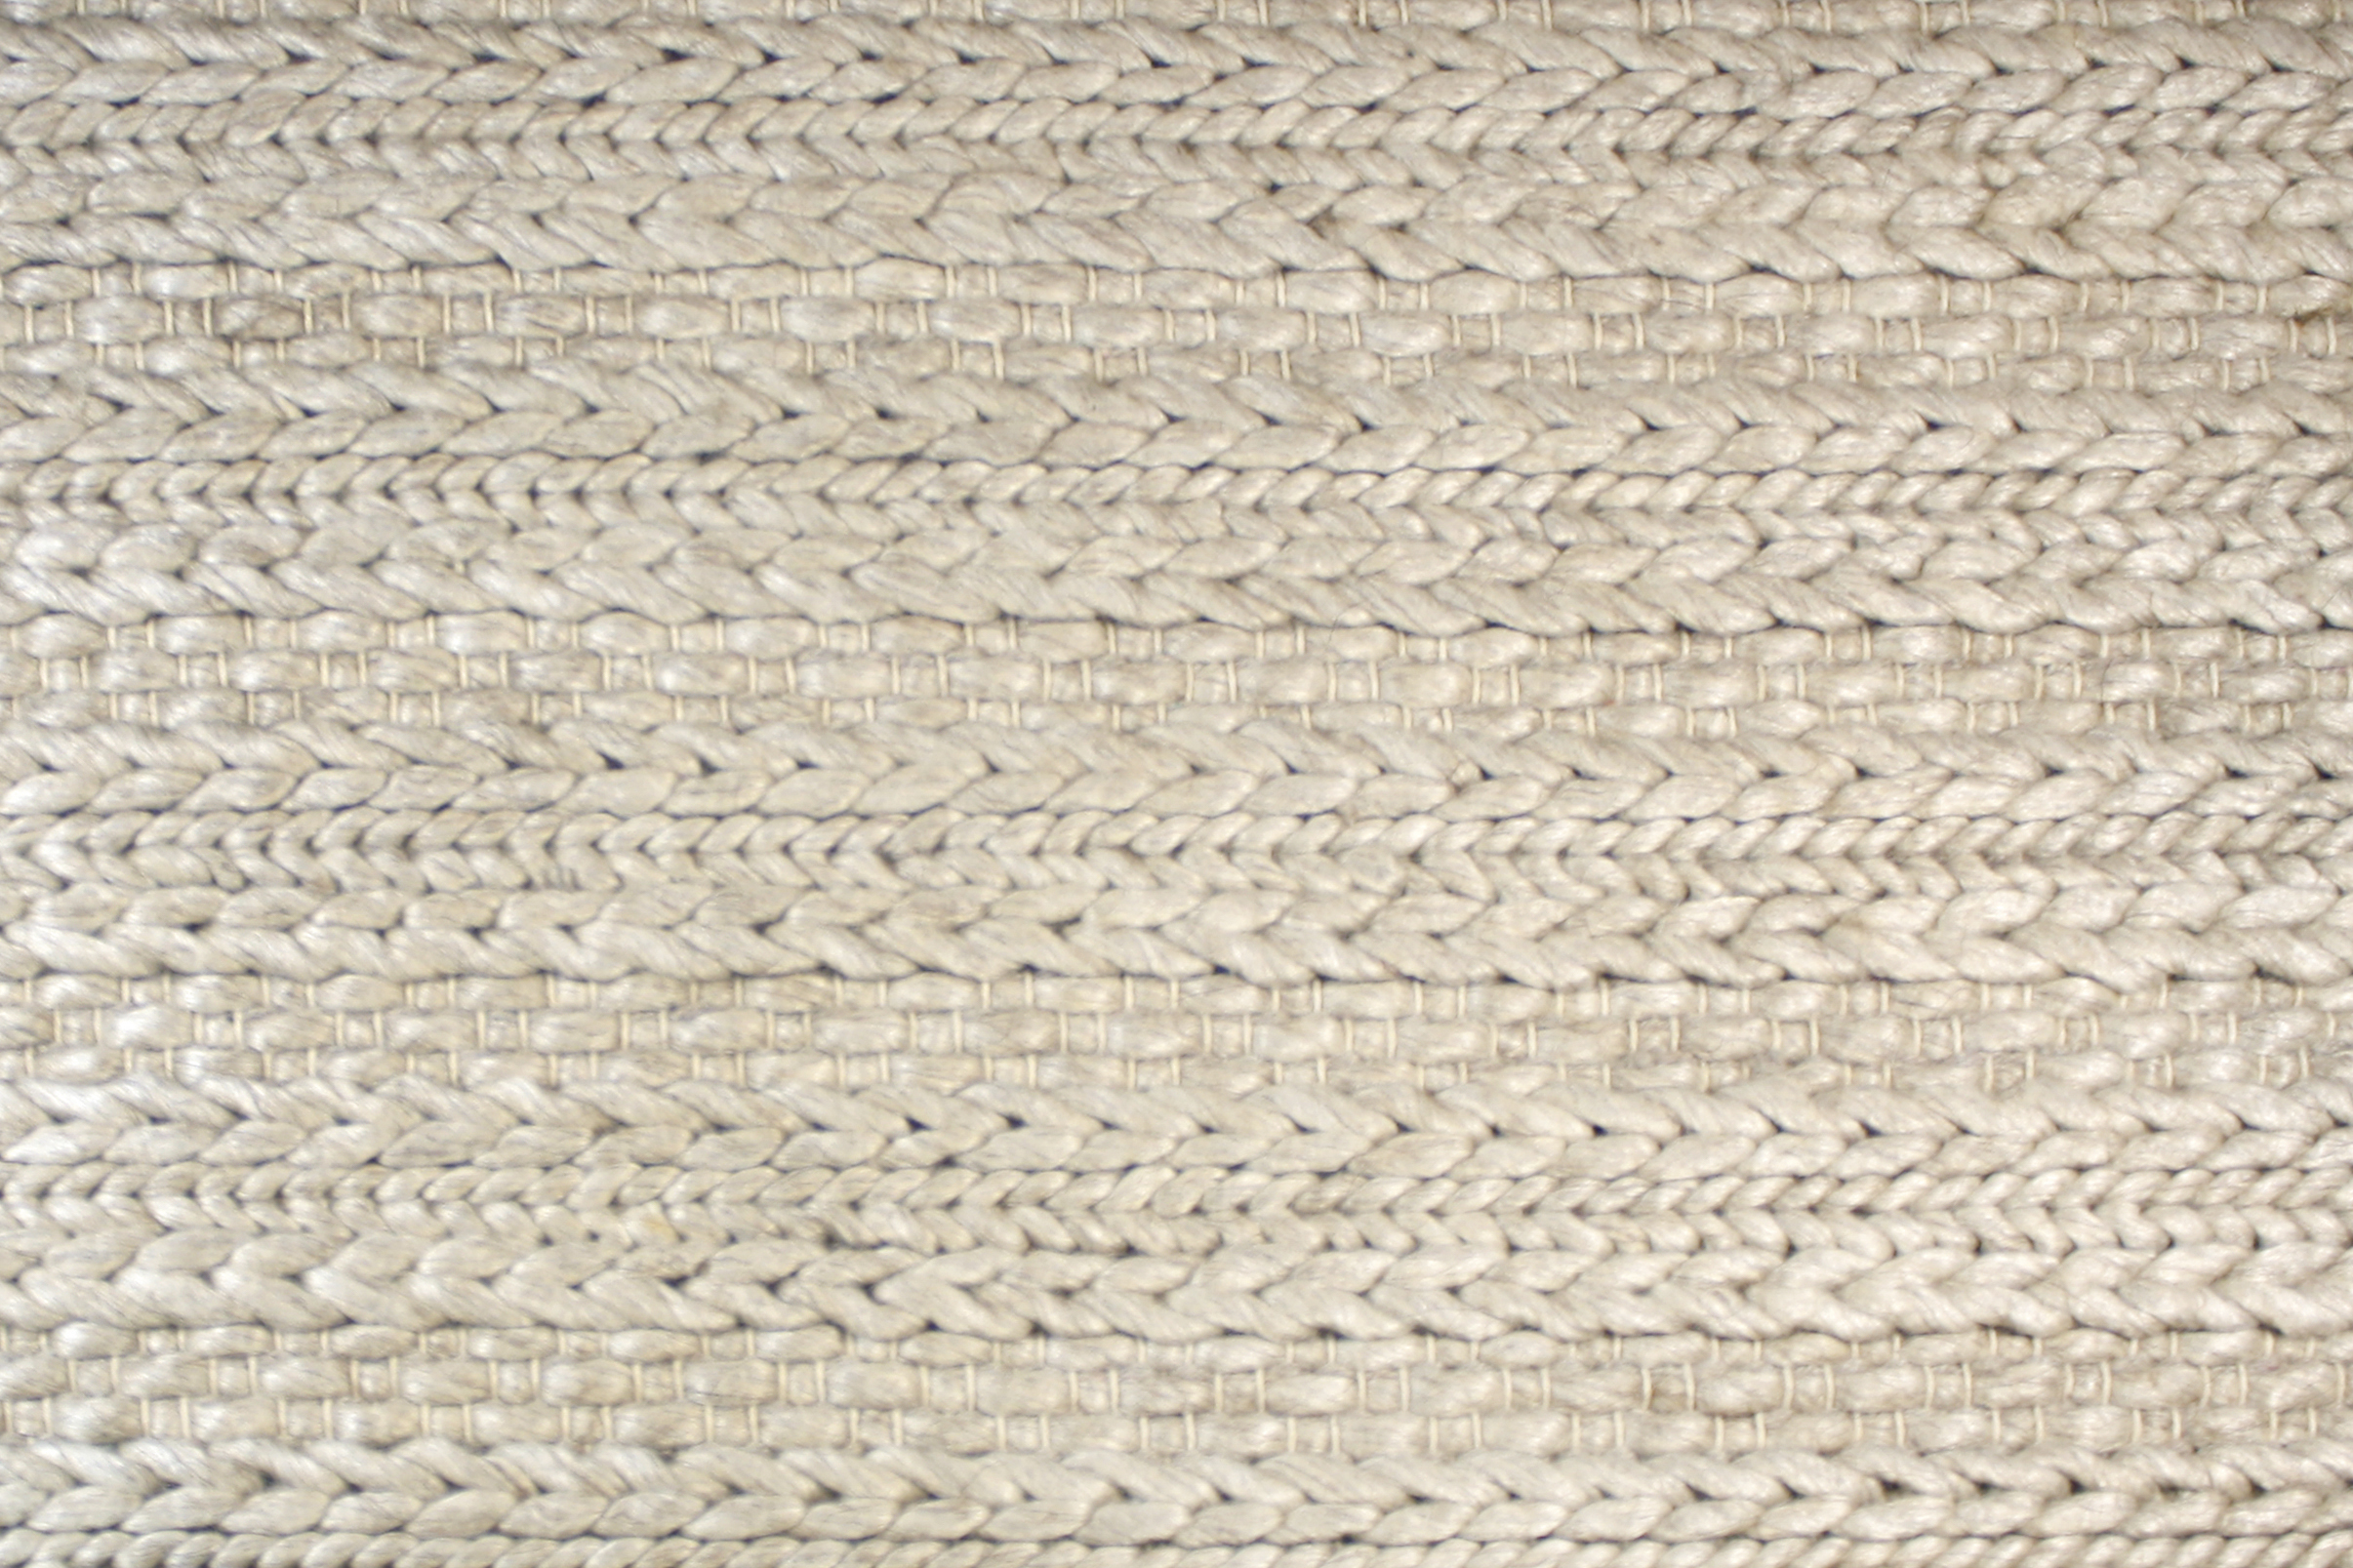 Bedford Cord 03 Beige Braid Carpet Watson Smith